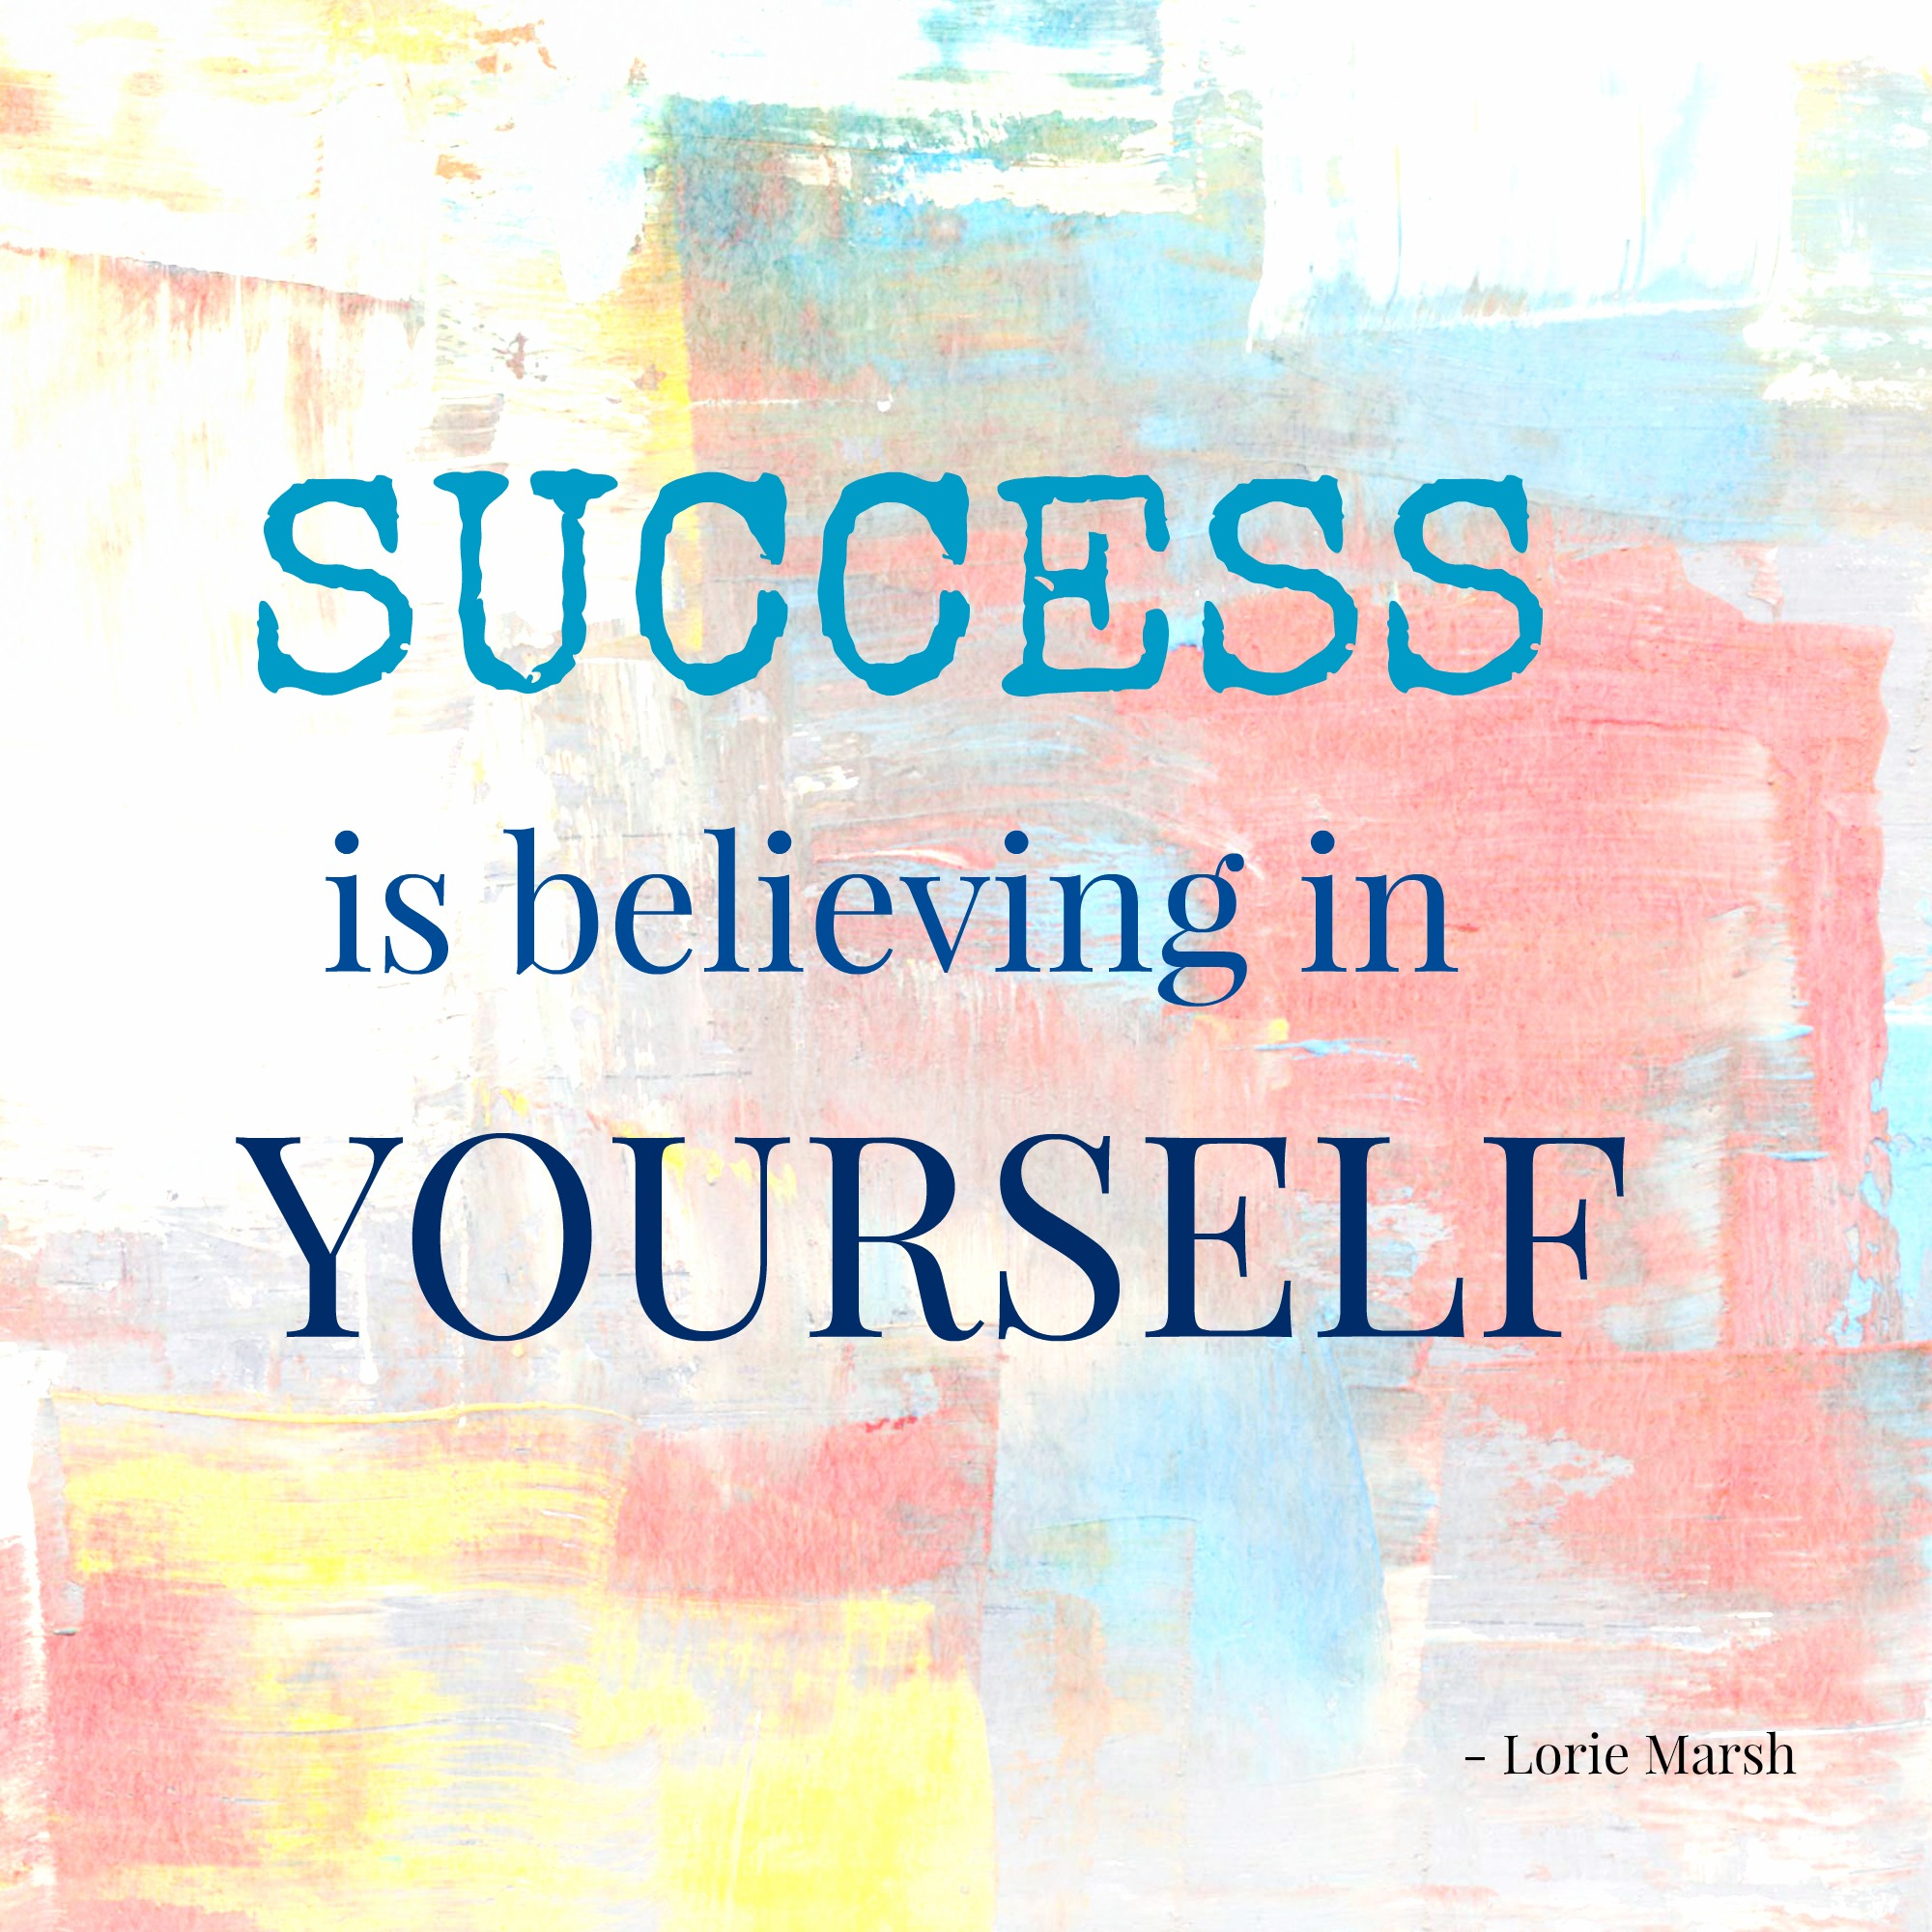 Success-is-belief-in-self-quote